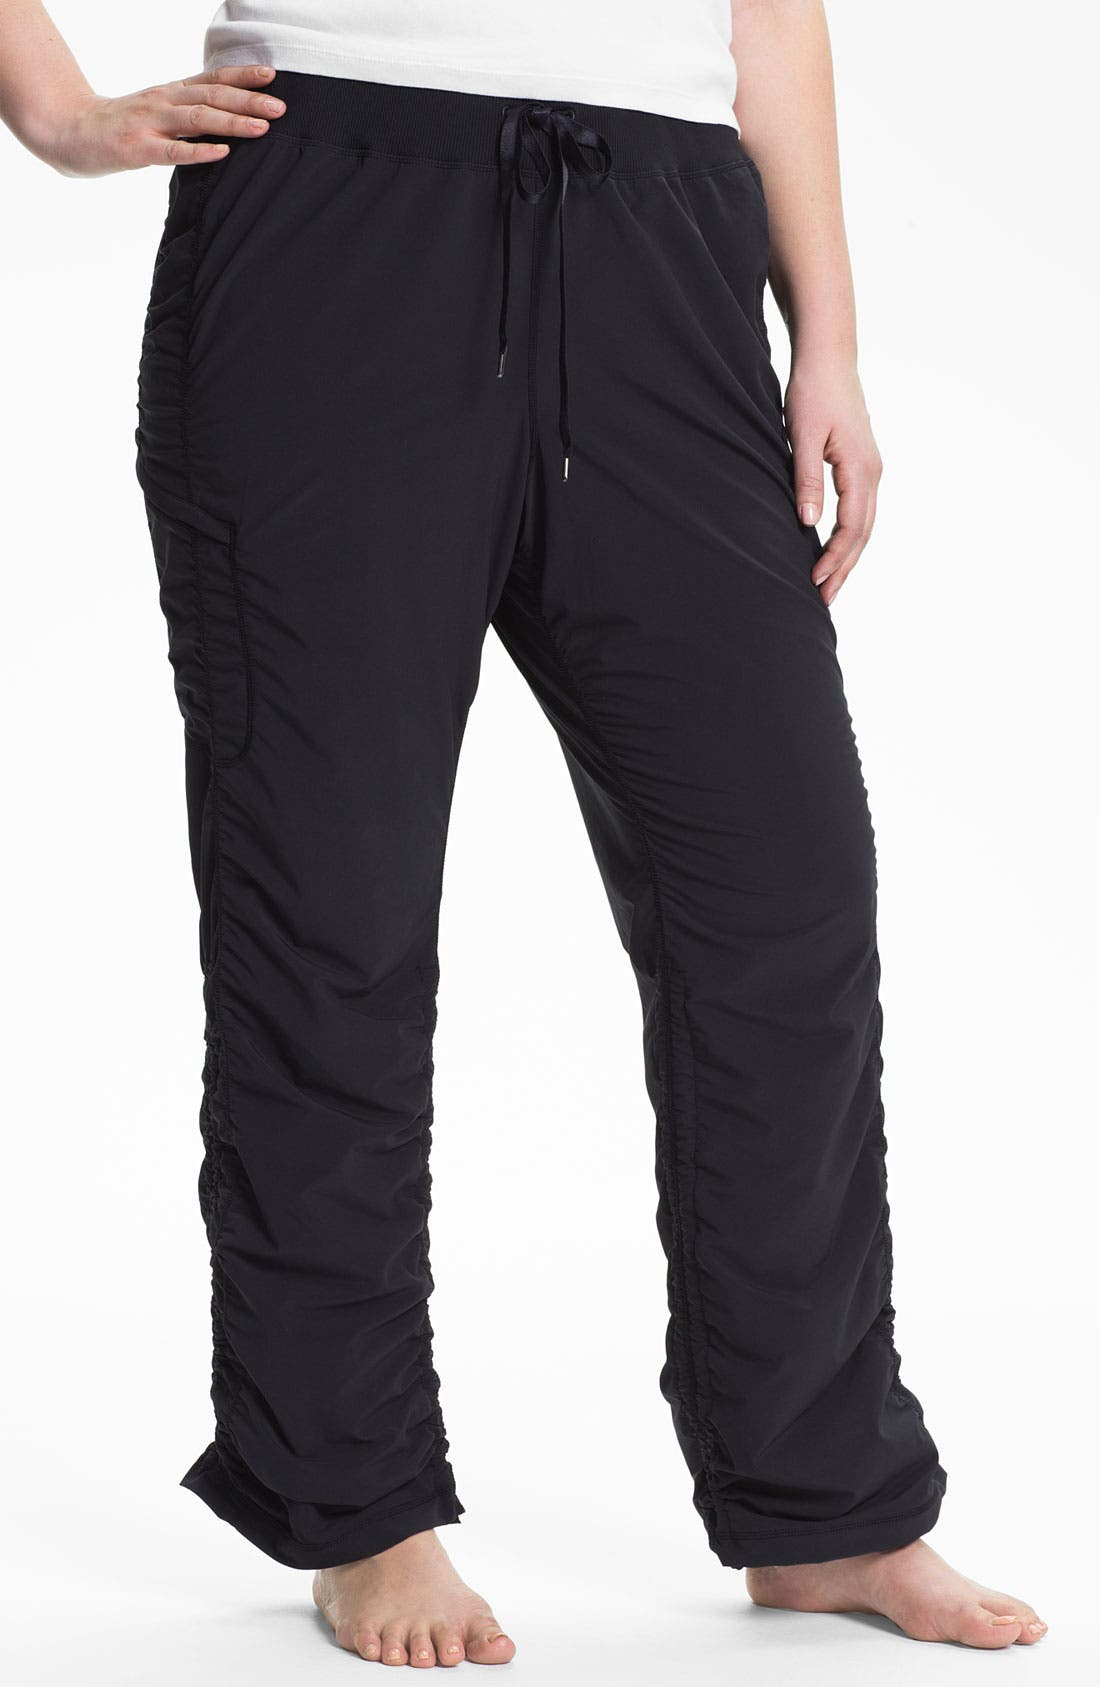 Alternate Image 1 Selected - Zella 'Move' Pants (Plus Size)